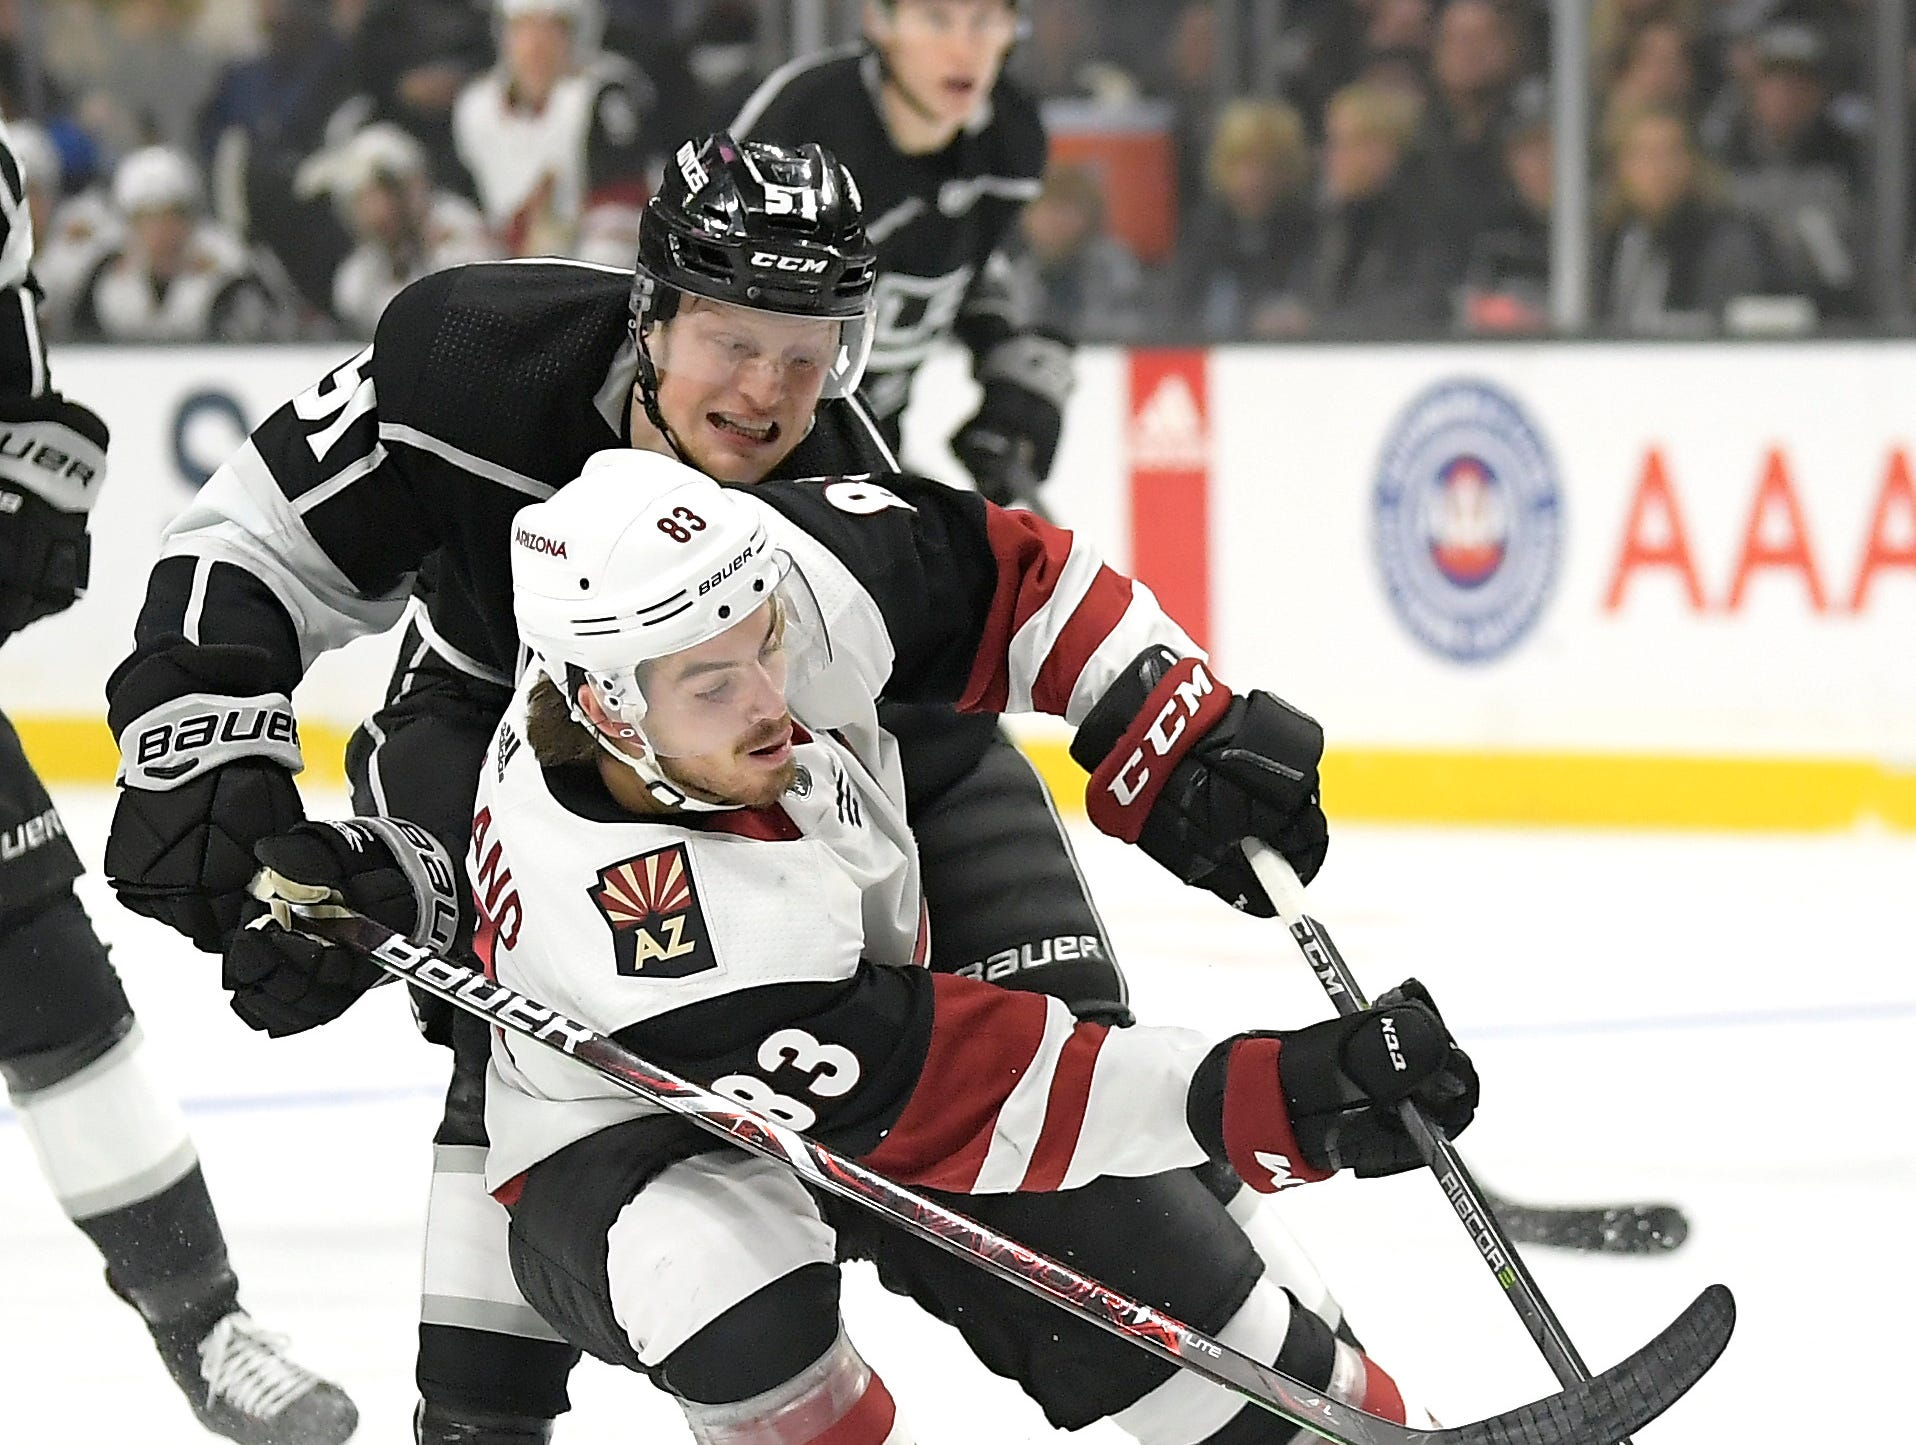 Los Angeles Kings left wing Austin Wagner, top, reaches for the puck in front of Arizona Coyotes right wing Conor Garland during the first period of an NHL hockey game Thursday, Dec. 27, 2018, in Los Angeles. (AP Photo/Mark J. Terrill)